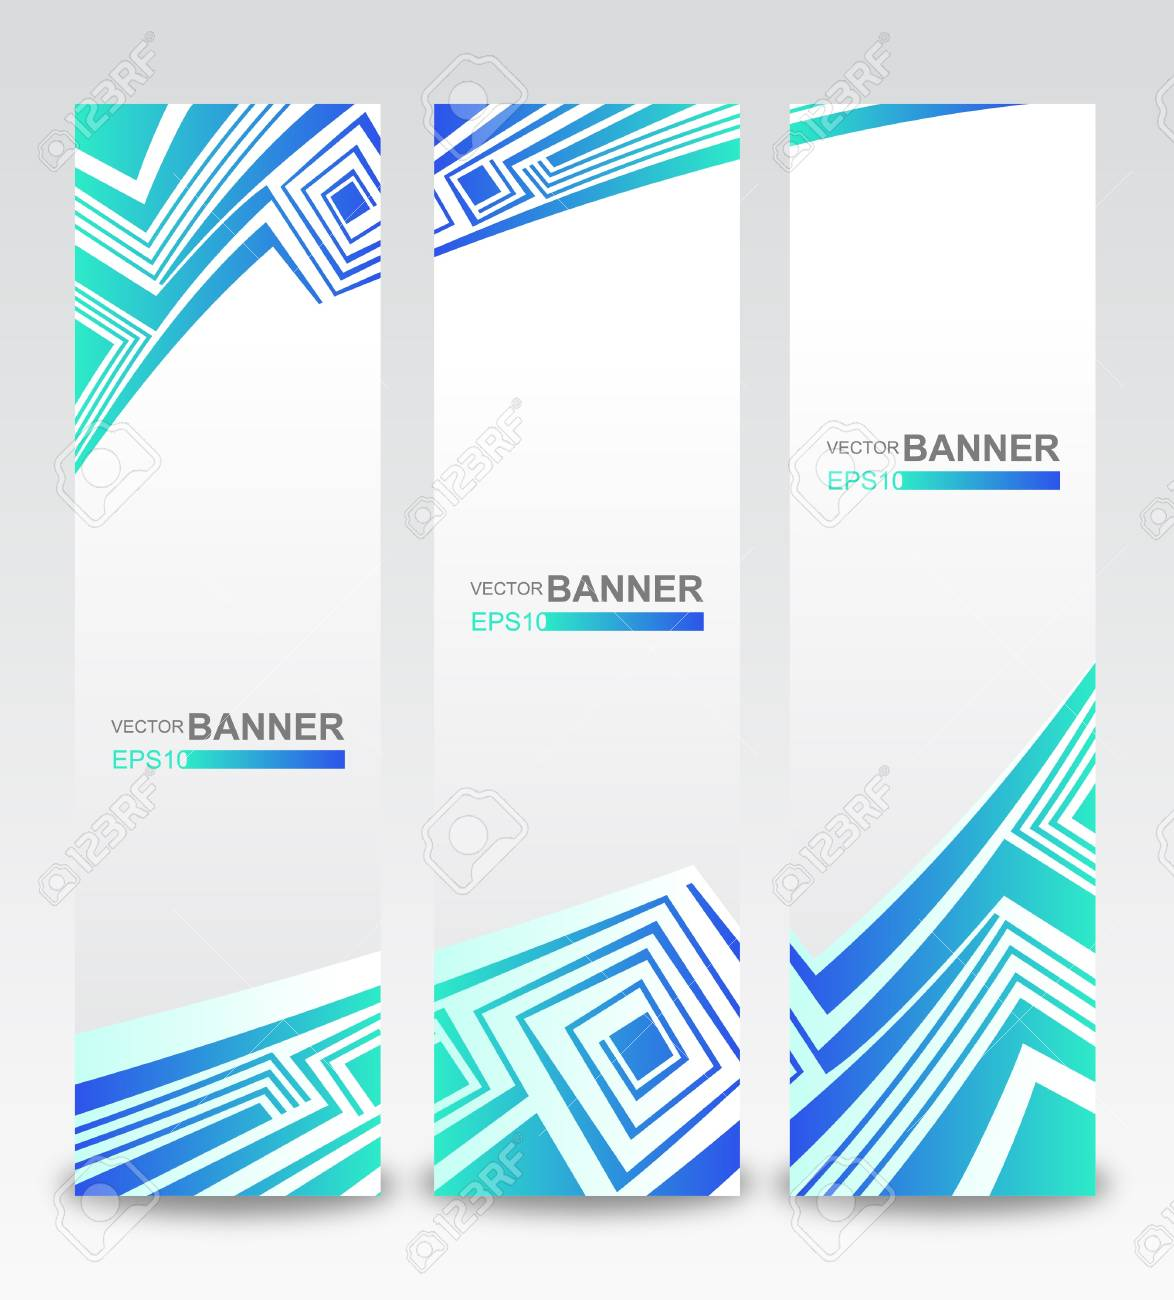 The stylish vertical banners Stock Vector - 14203255